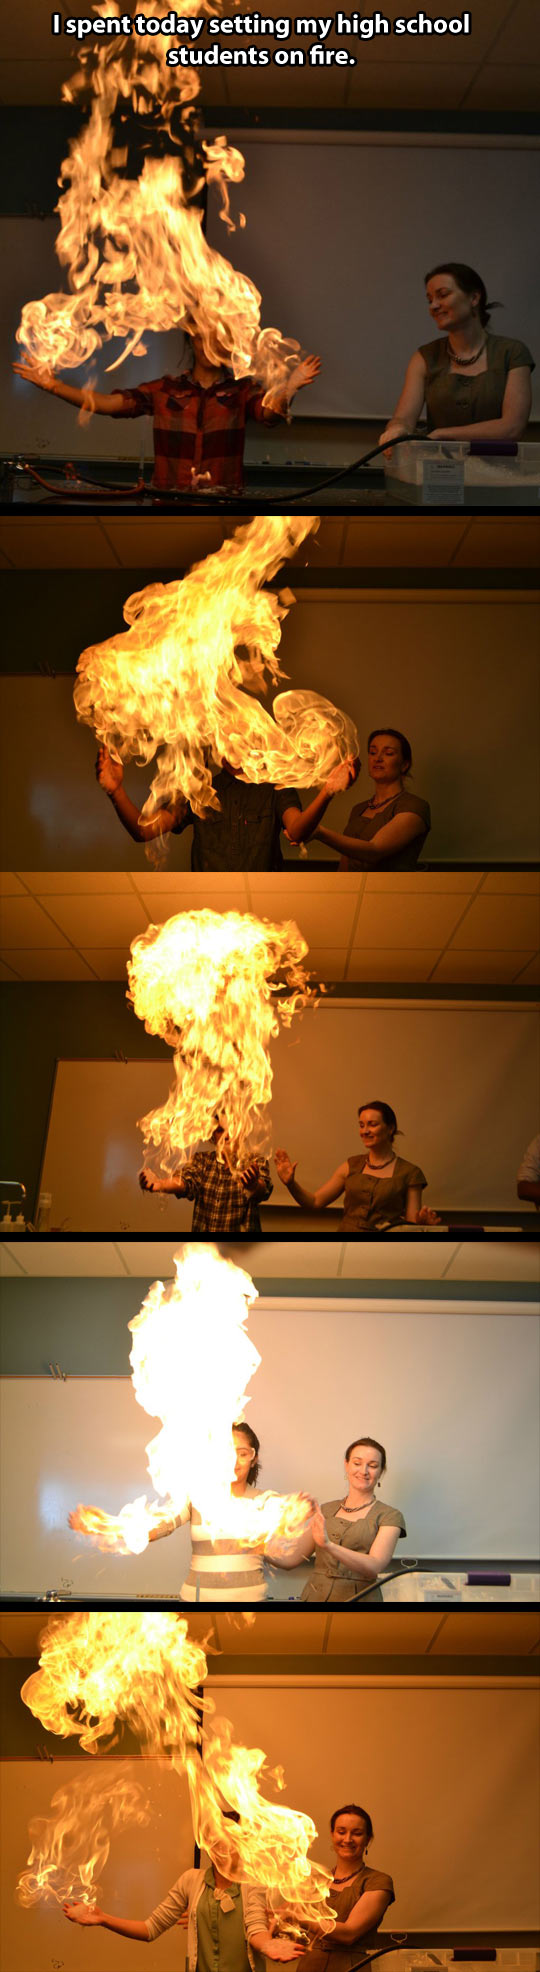 Setting my students on fire…